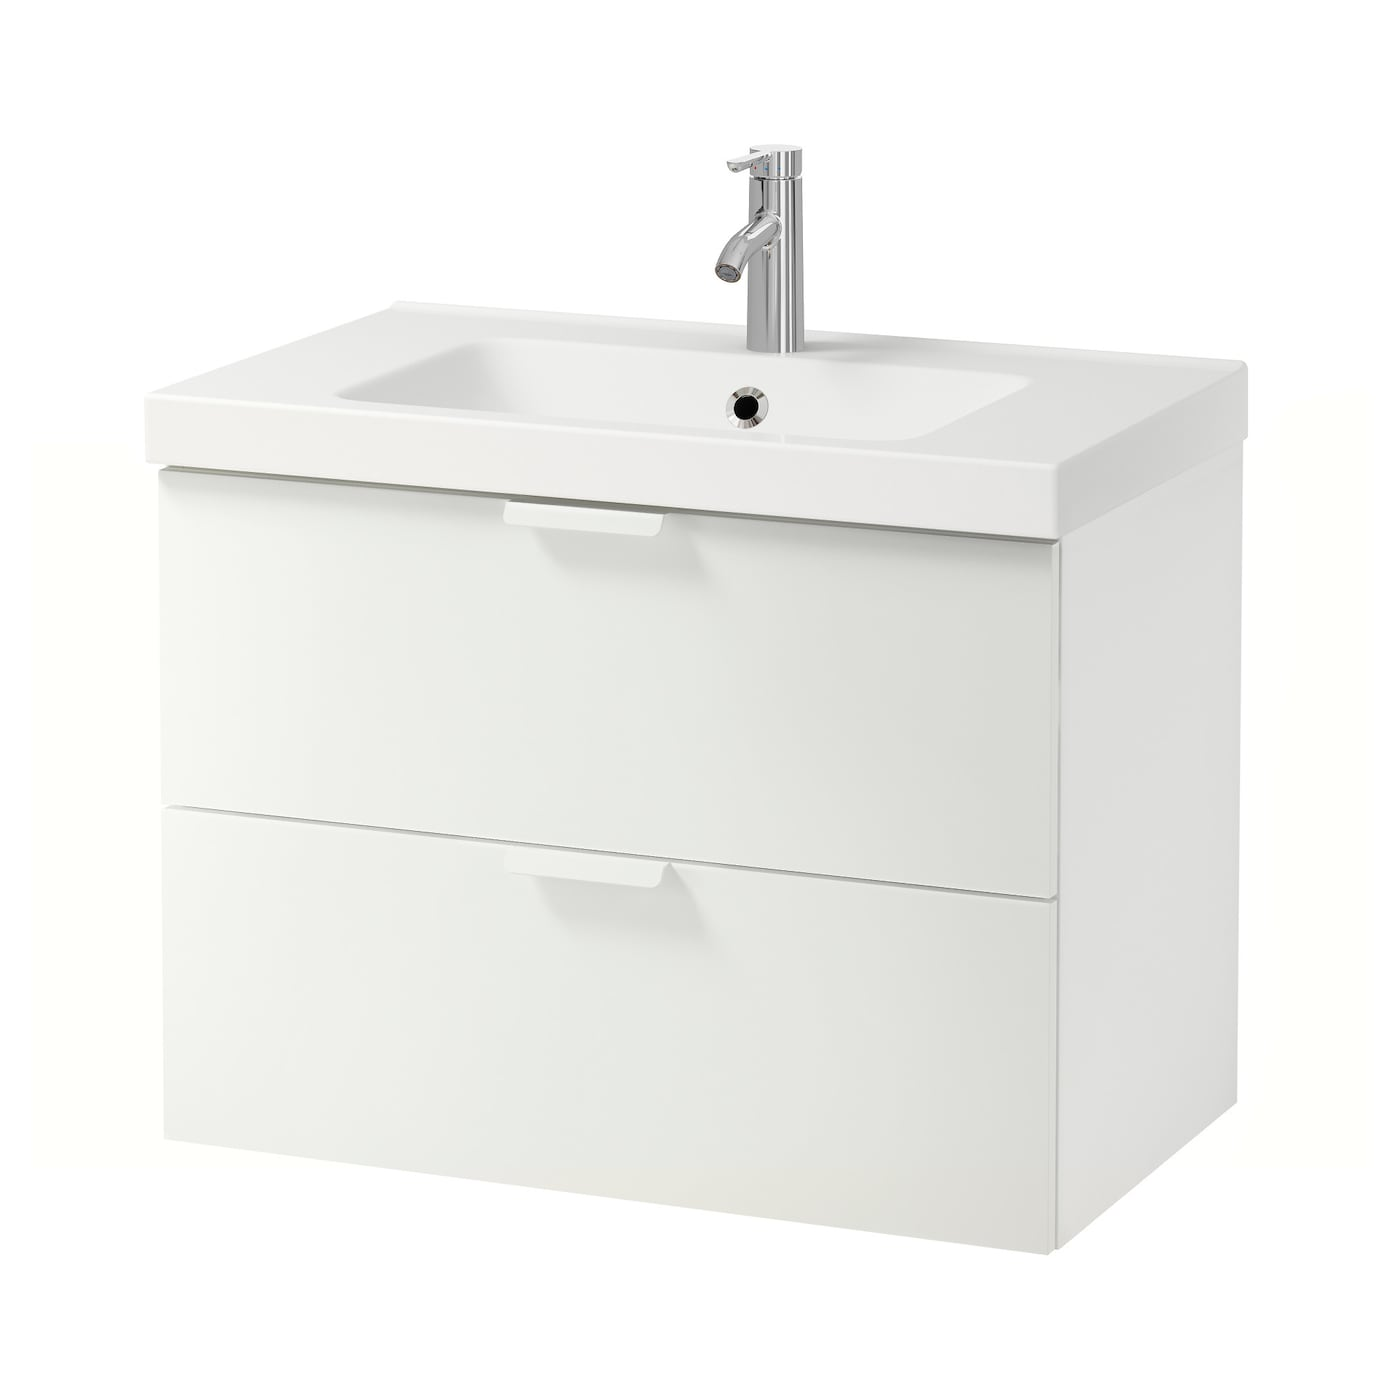 odensvik godmorgon meuble lavabo 2tir blanc 83 x 49 x 64. Black Bedroom Furniture Sets. Home Design Ideas